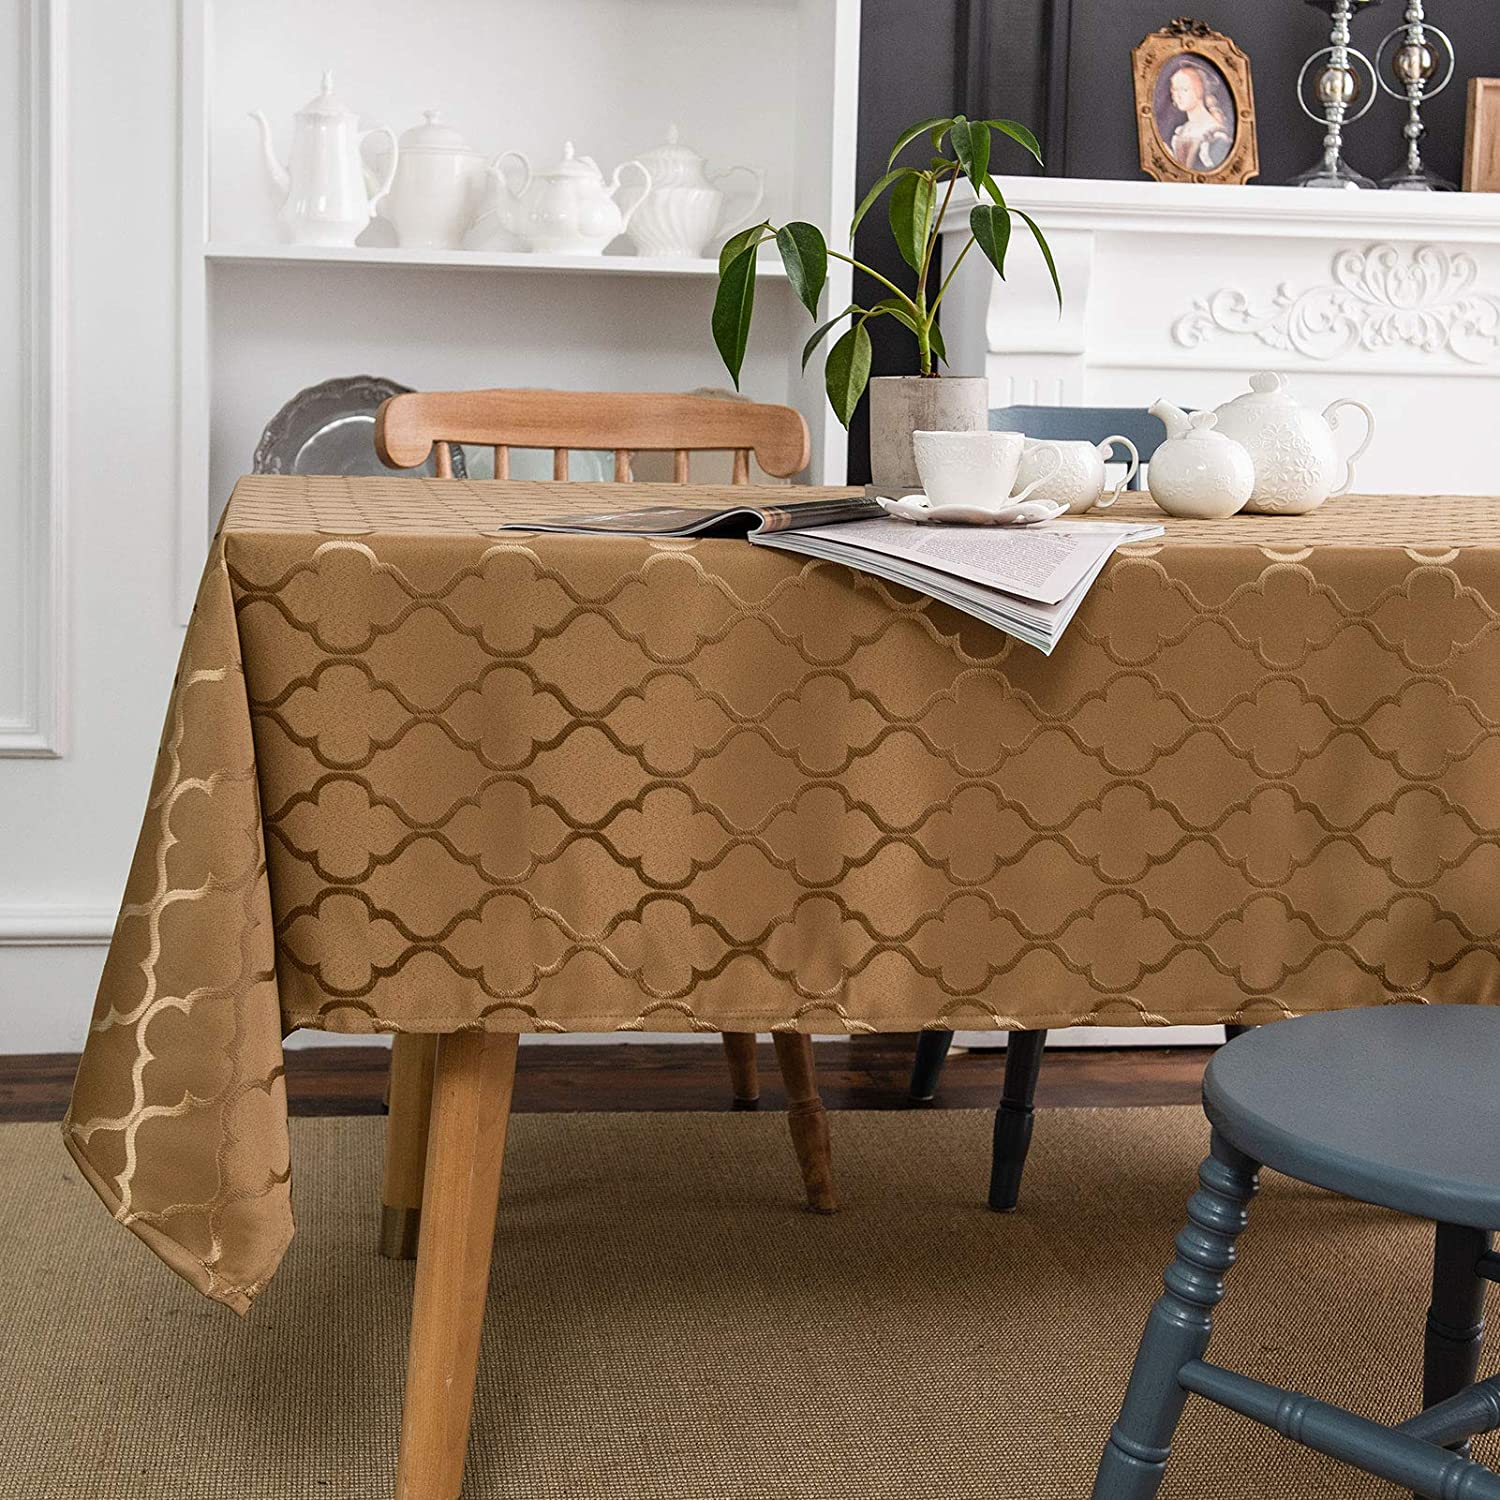 Melodieux Moroccan Jacquard Tablecloth Geometric Table Cover Spill Oil Dusty Proof Water Wrinkle Resistant for Kitchen Dining Room Tabletop Decoration, Rectangle, 60